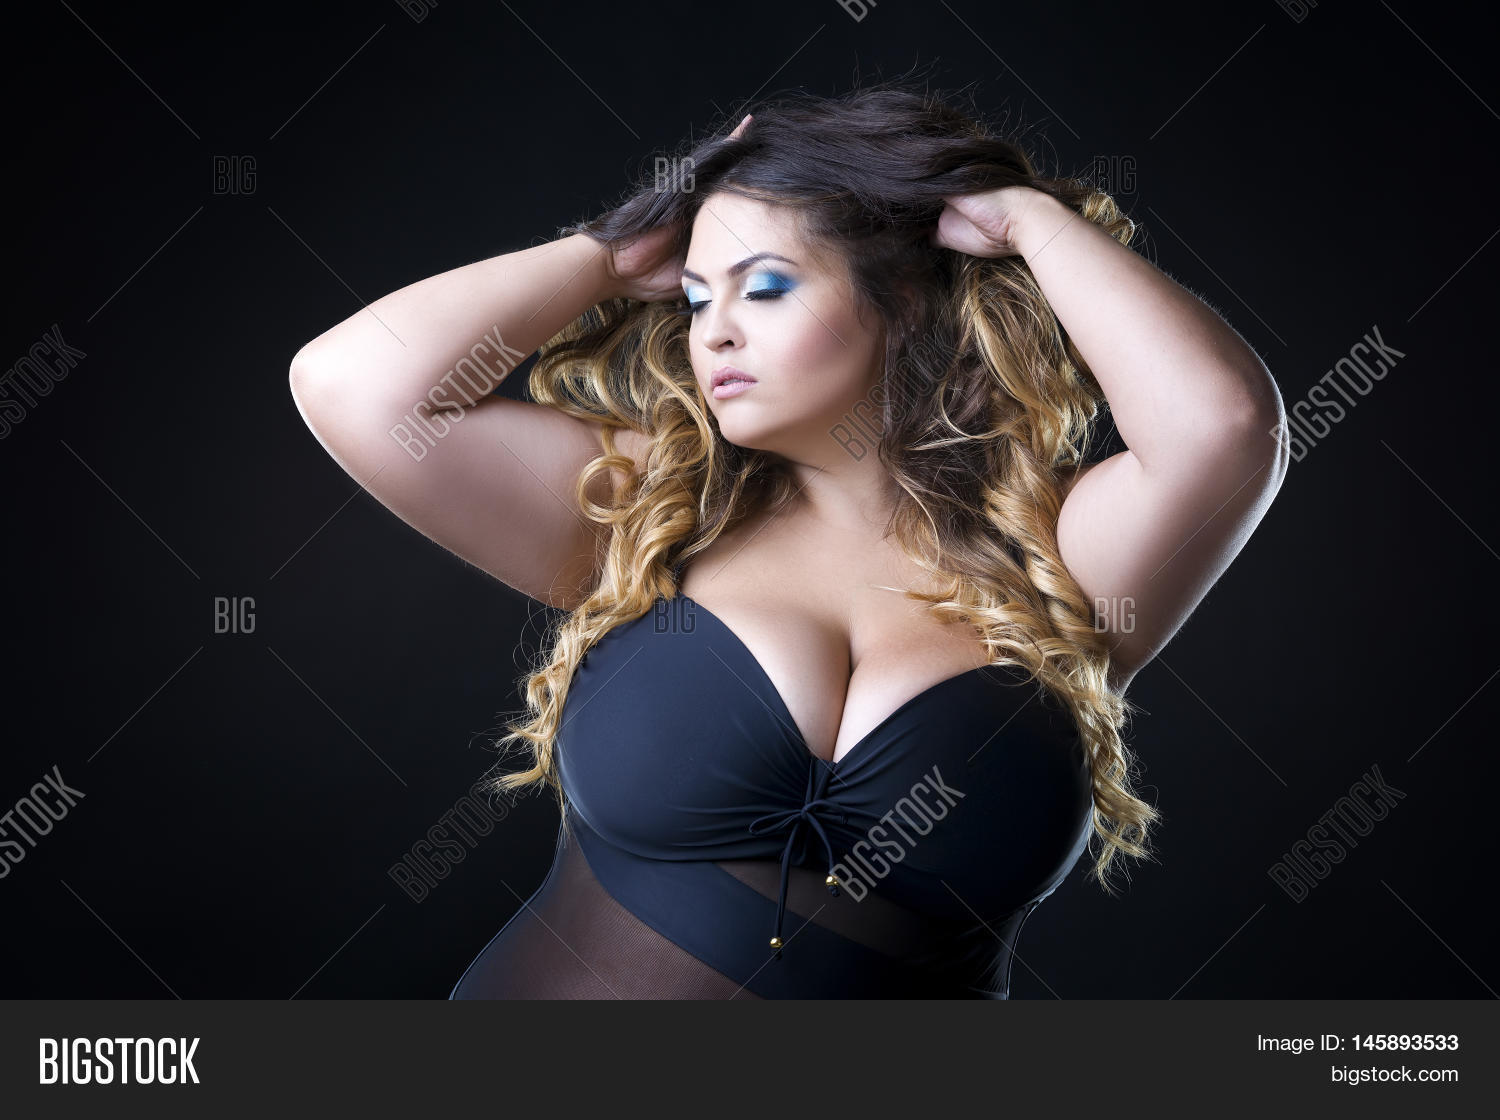 Big breast photo woman